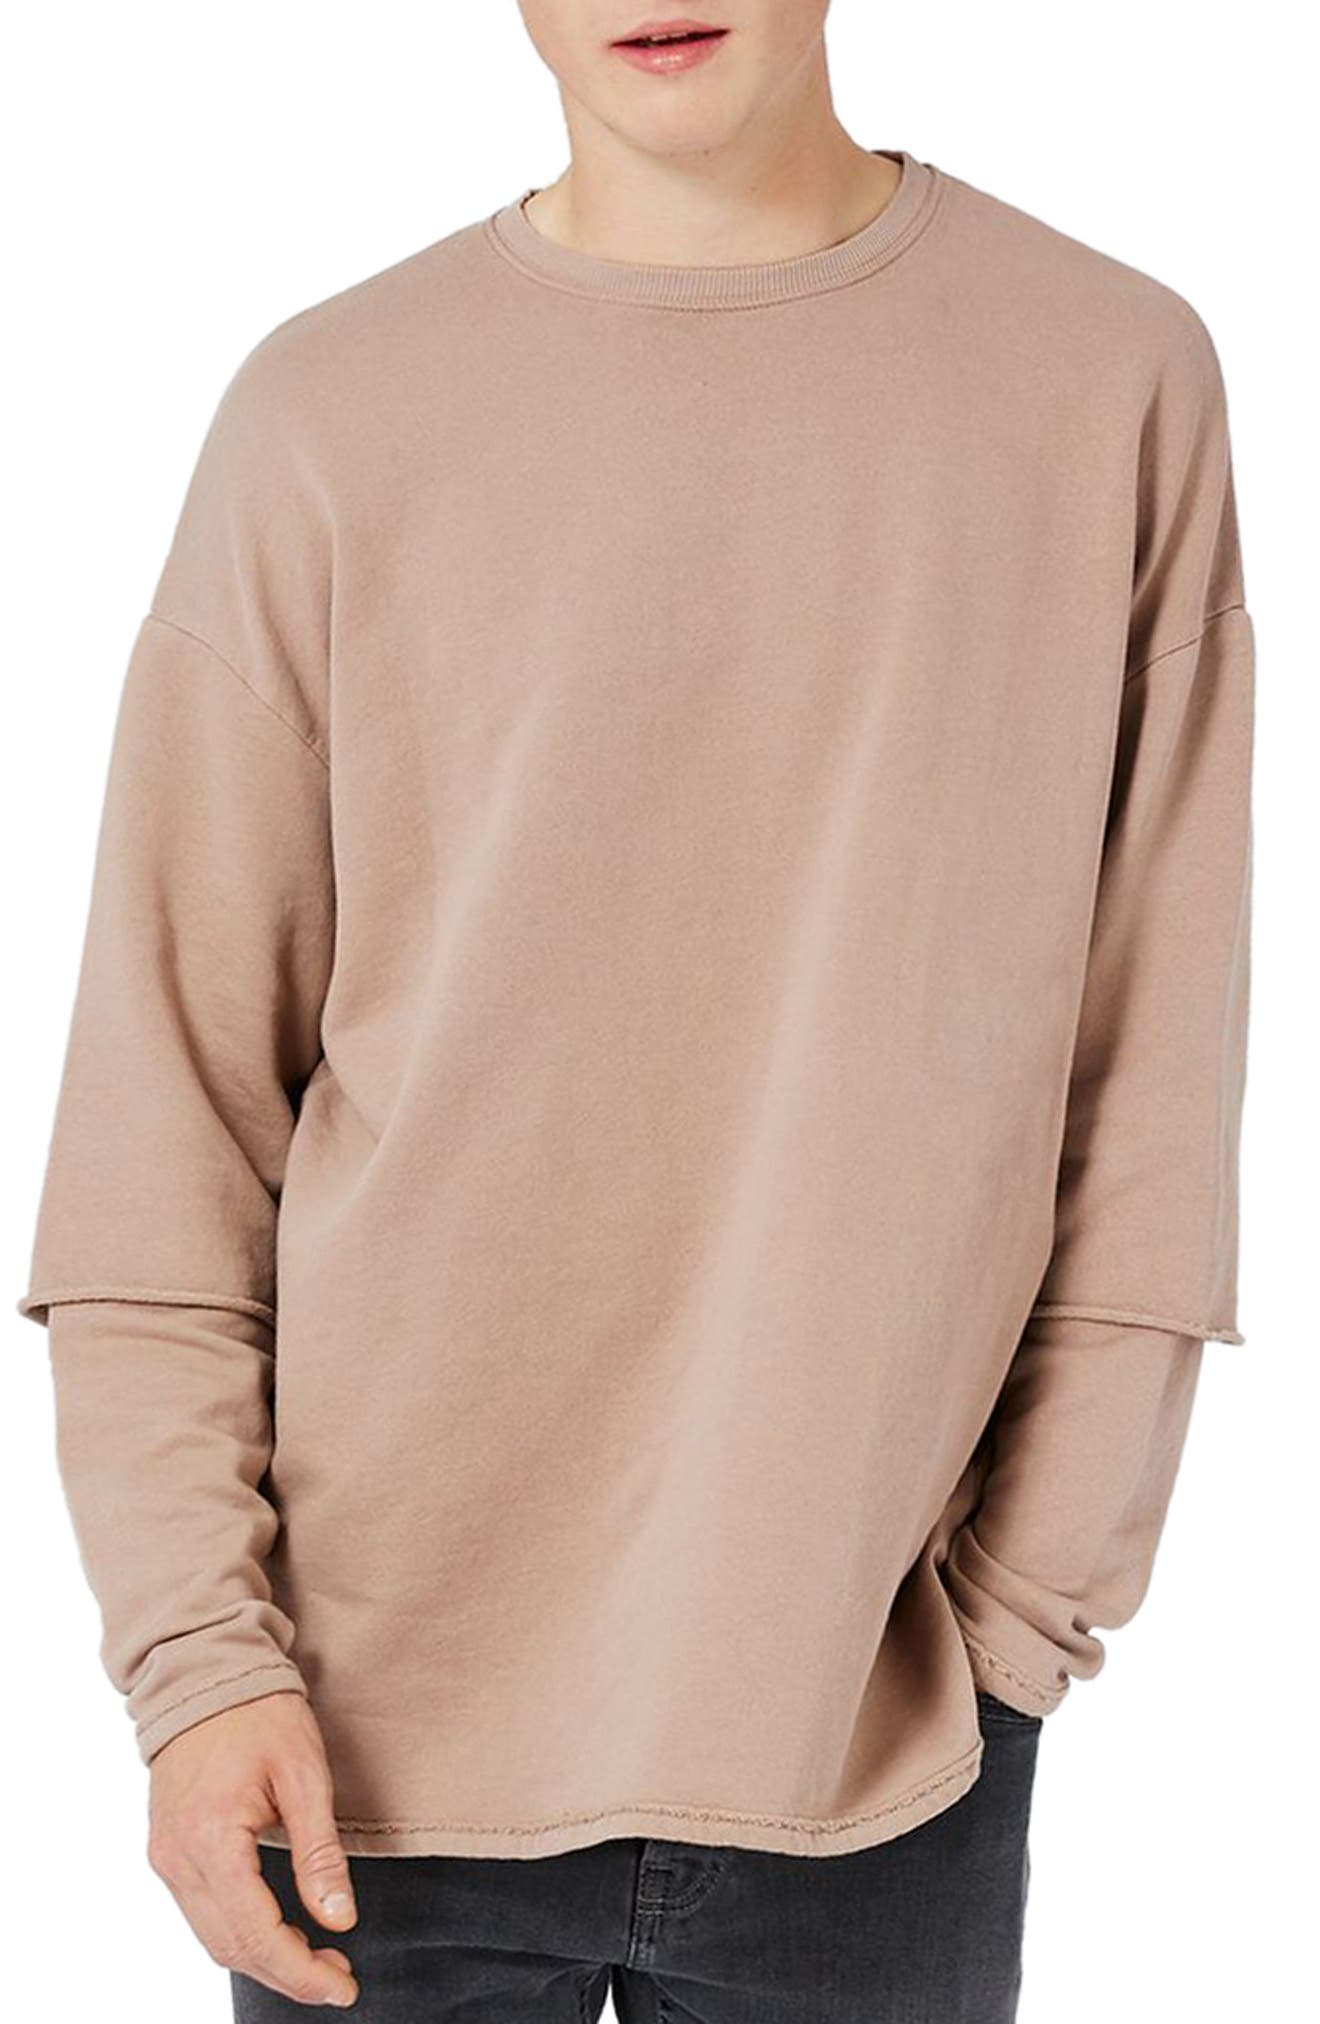 Topman Layer Sleeve Sweatshirt